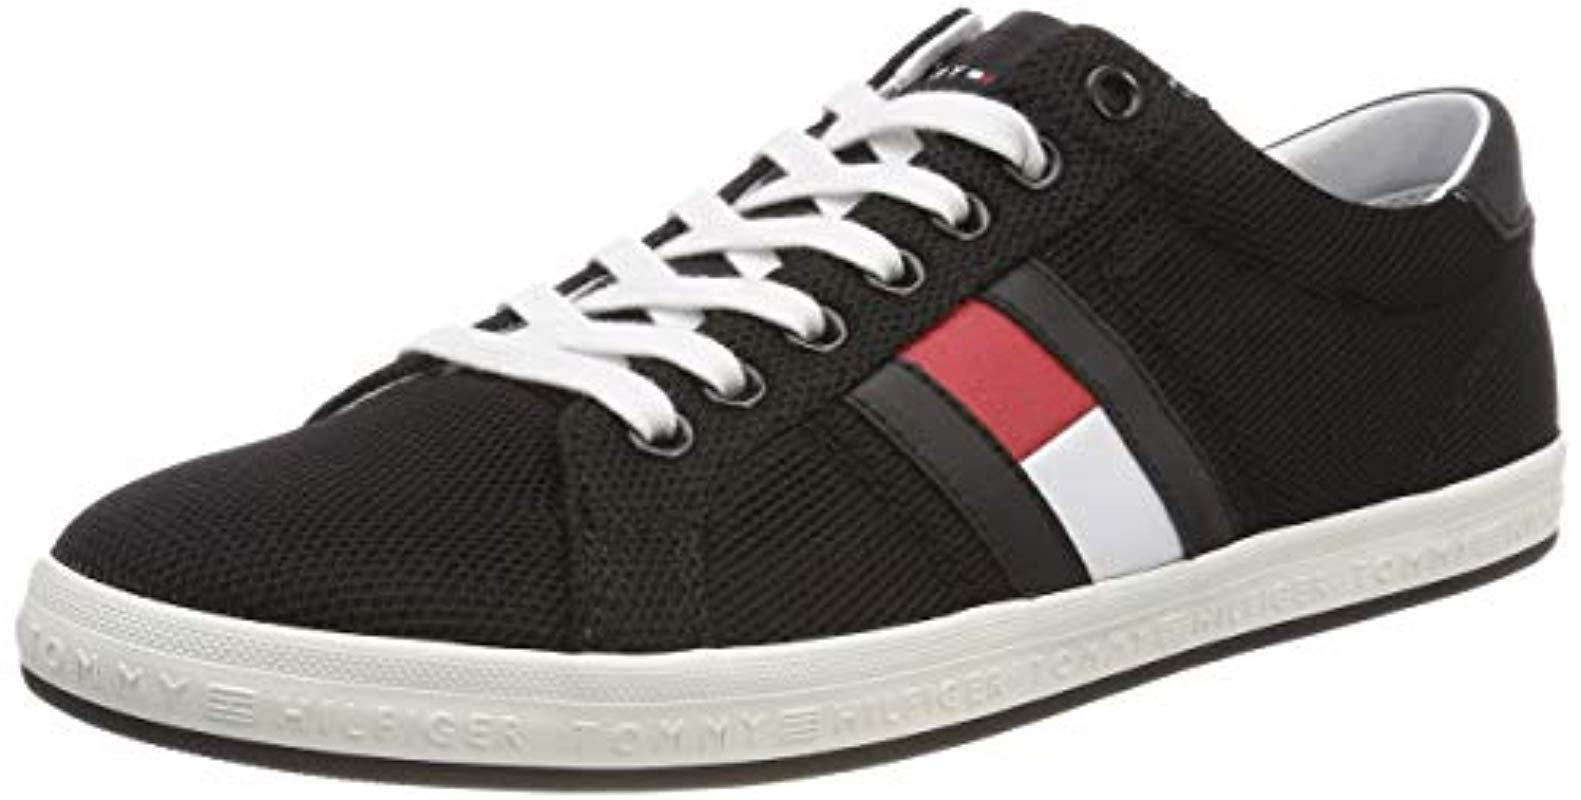 621bde275 Tommy Hilfiger Essential Flag Detail Sneaker Trainers in Black for ...